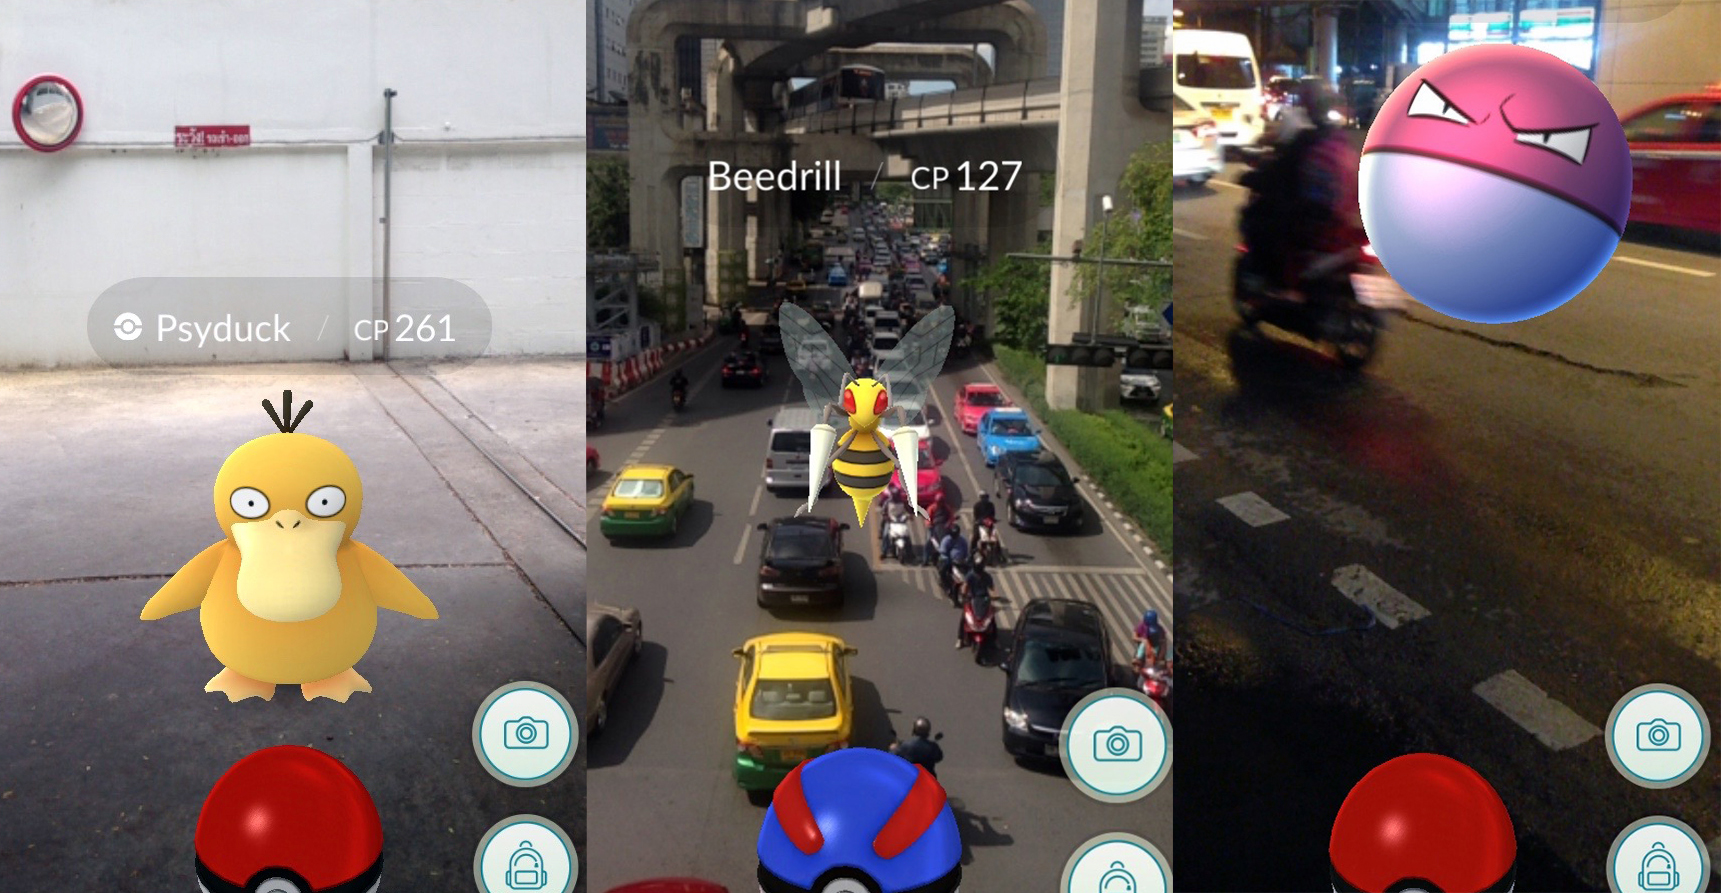 pokemon go in bangkok, pokemon go, bangkok